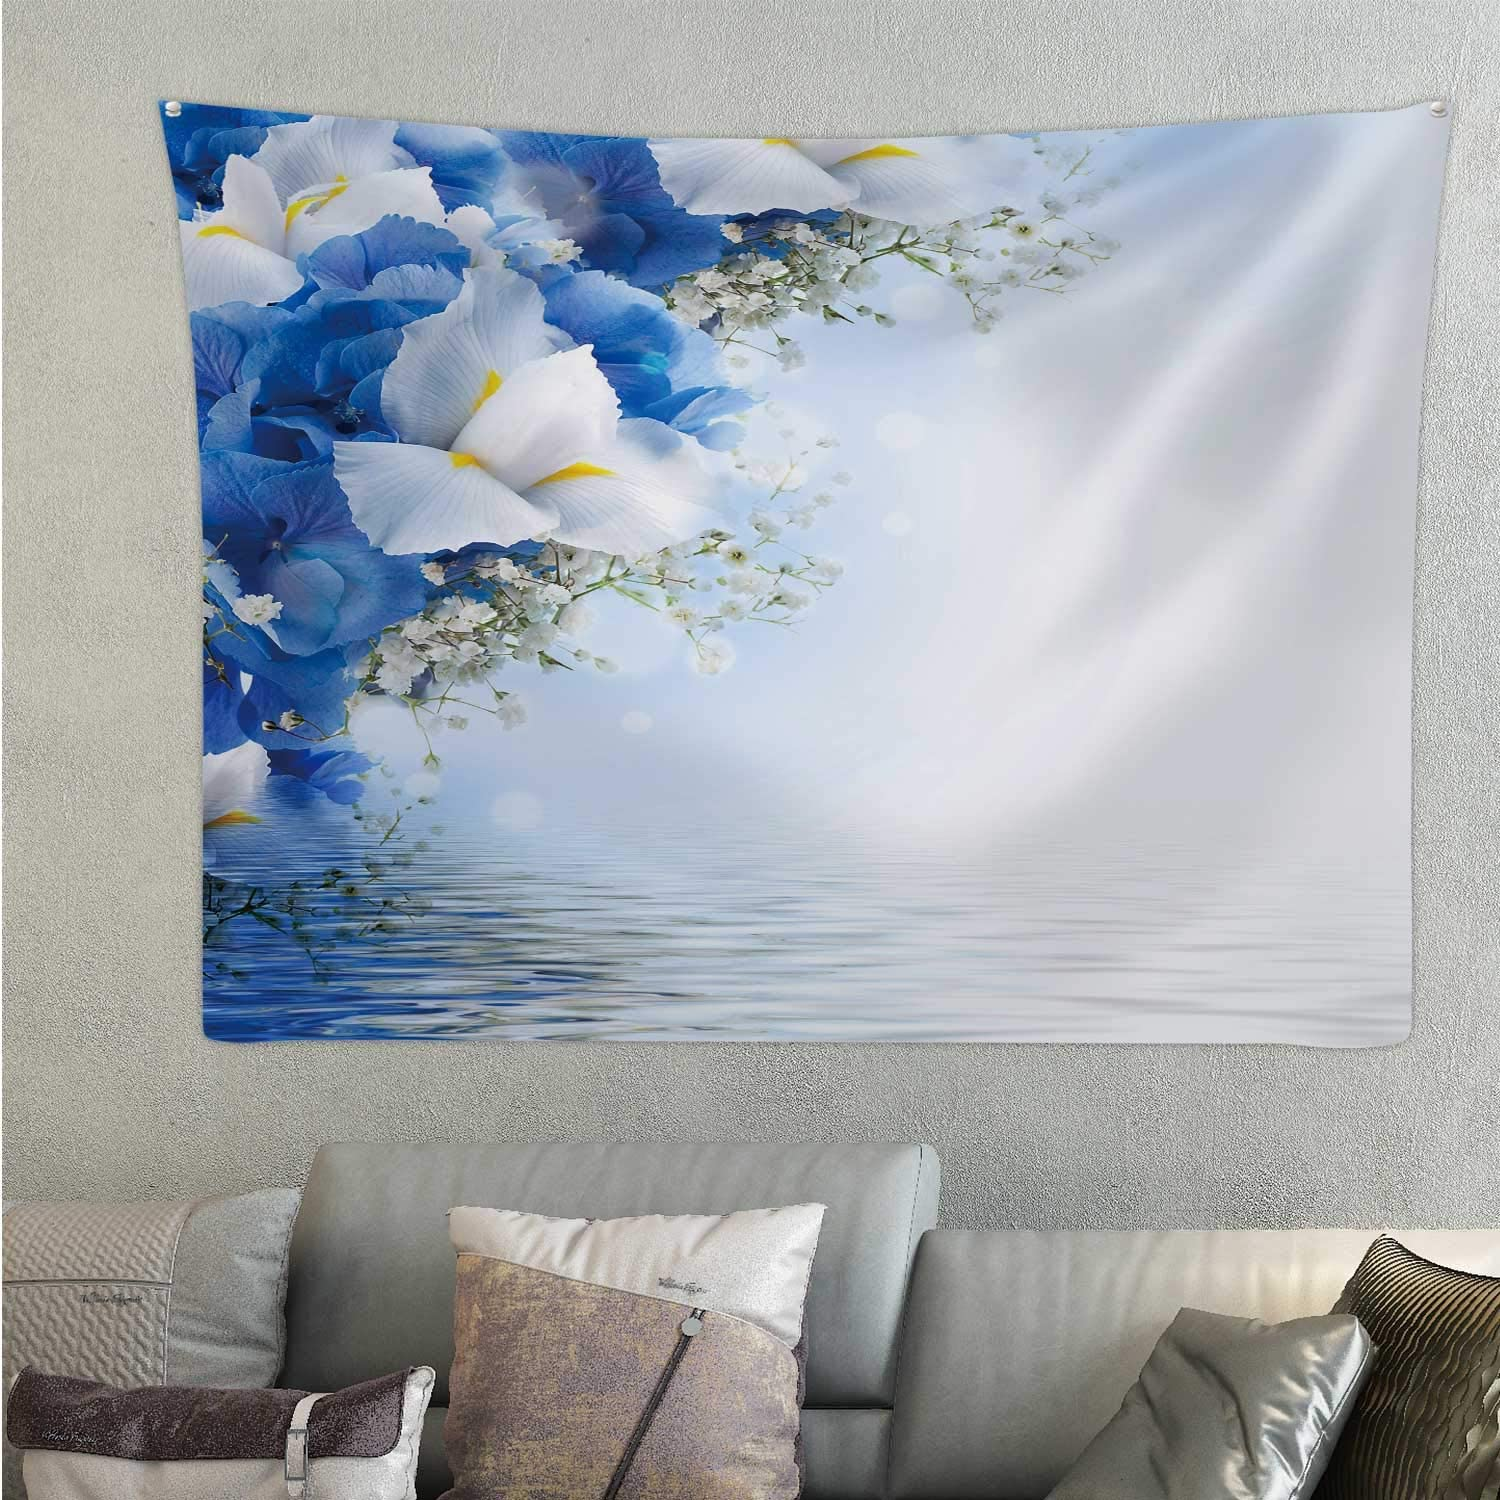 Tstyrea Flowers in a Bouquet,Room Decorations Blue hdrangeas and White Irises for Decor 78.7'' x 59.1''(WxH)